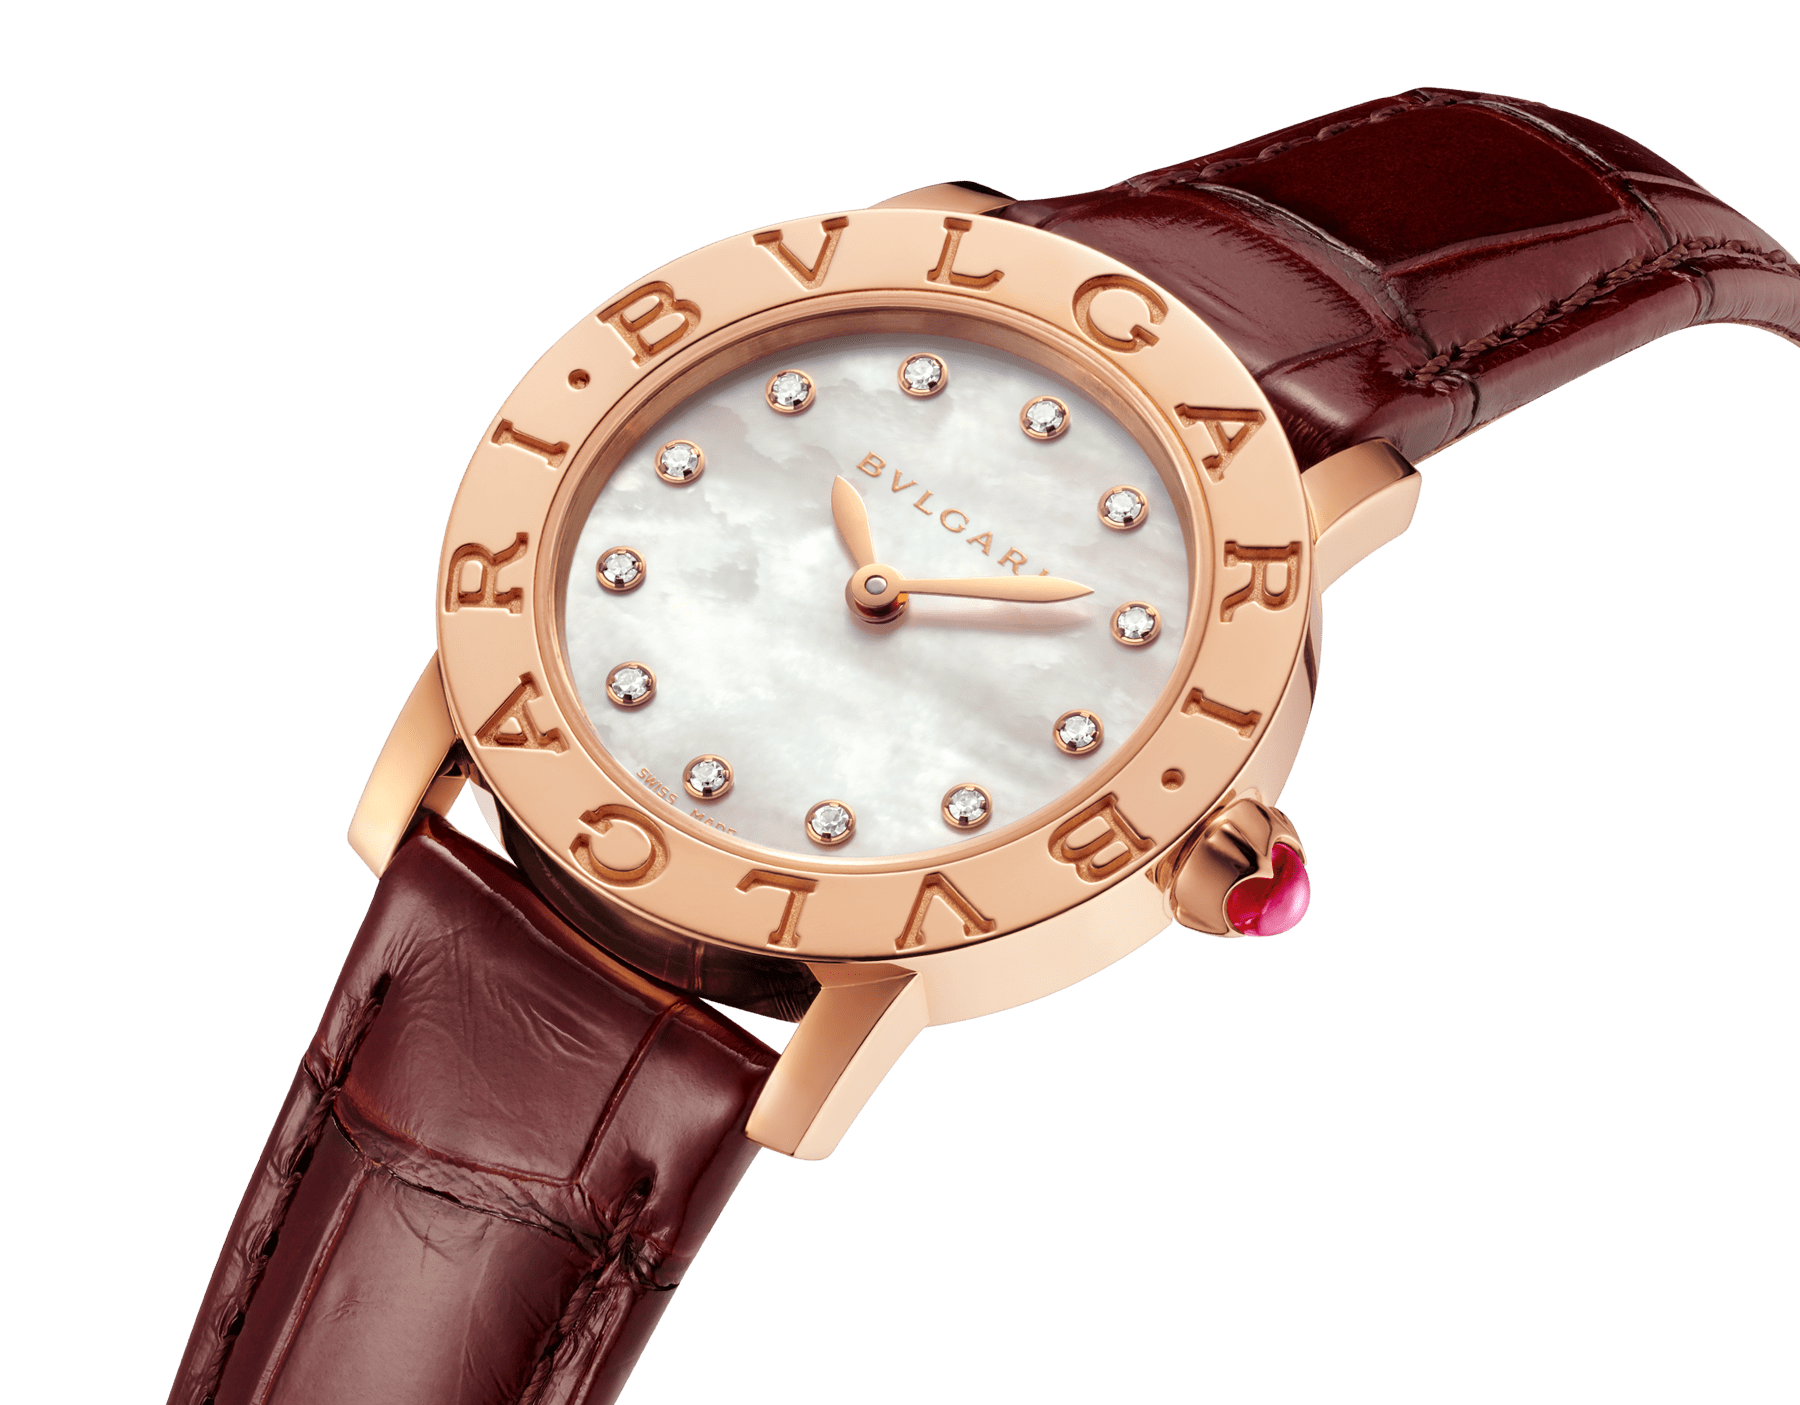 BVLGARI BVLGARI watch with 18 kt rose gold case, white mother-of-pearl dial, diamond indexes and shiny brown alligator bracelet 102751 image 2